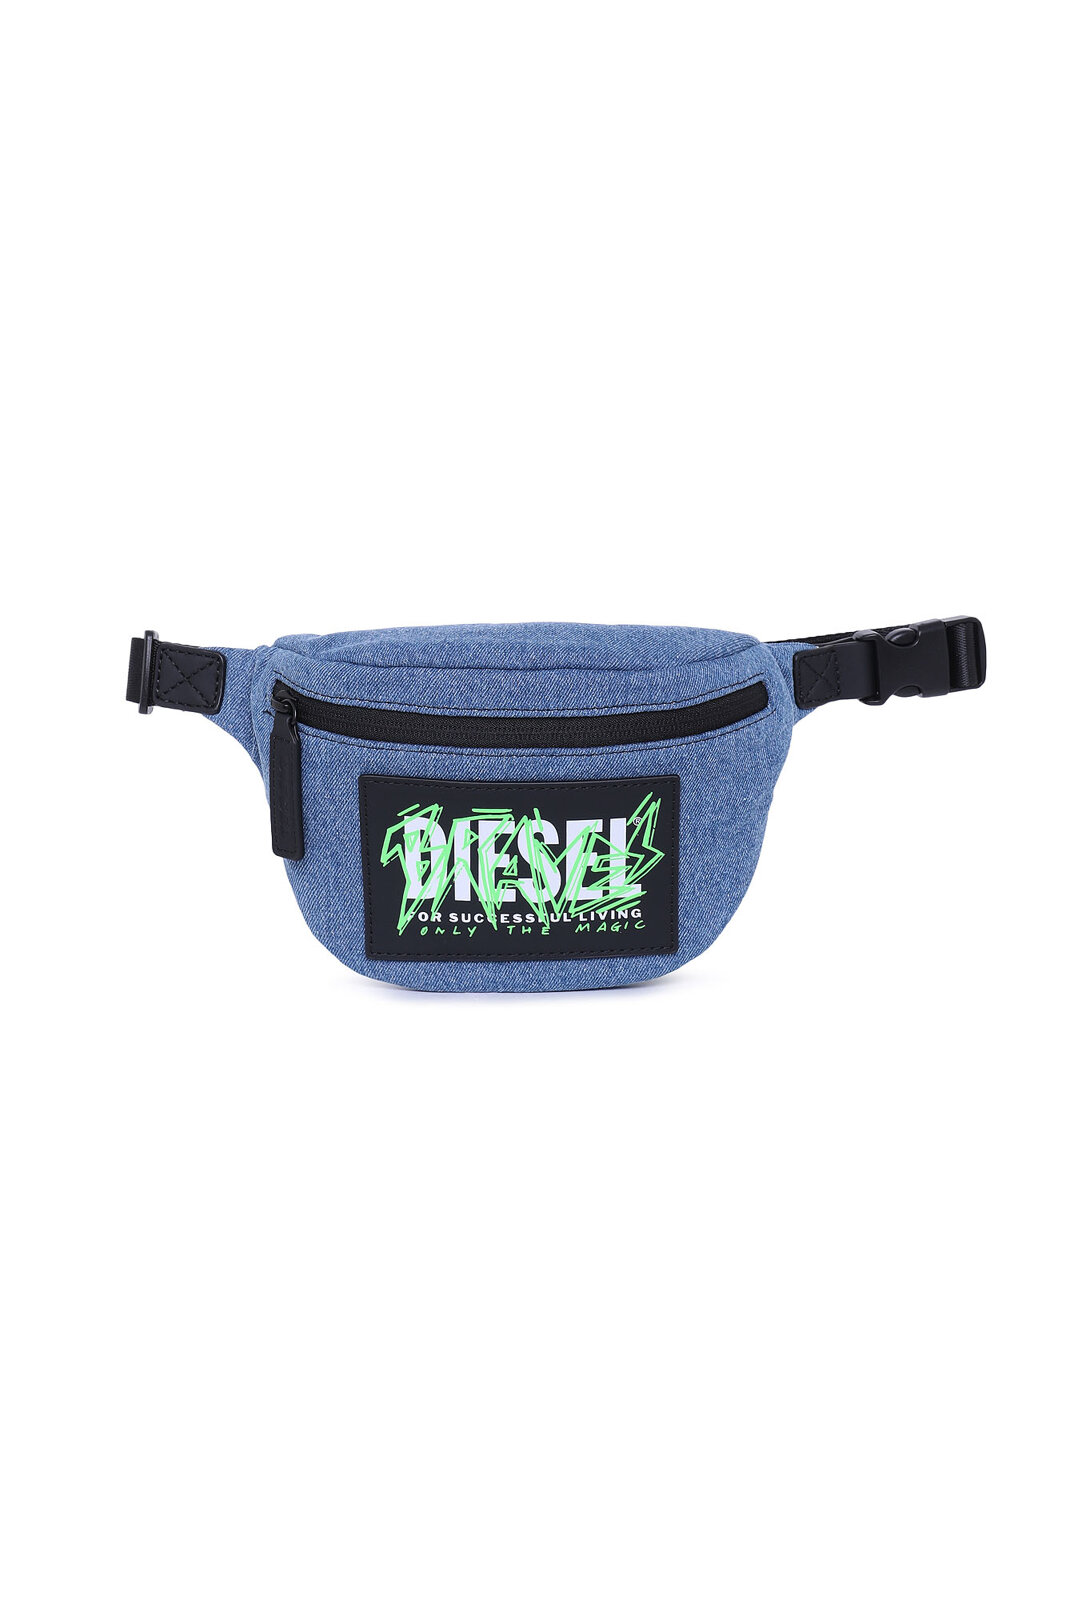 Braveschool Beltpatch Borsa - Diesel Kid